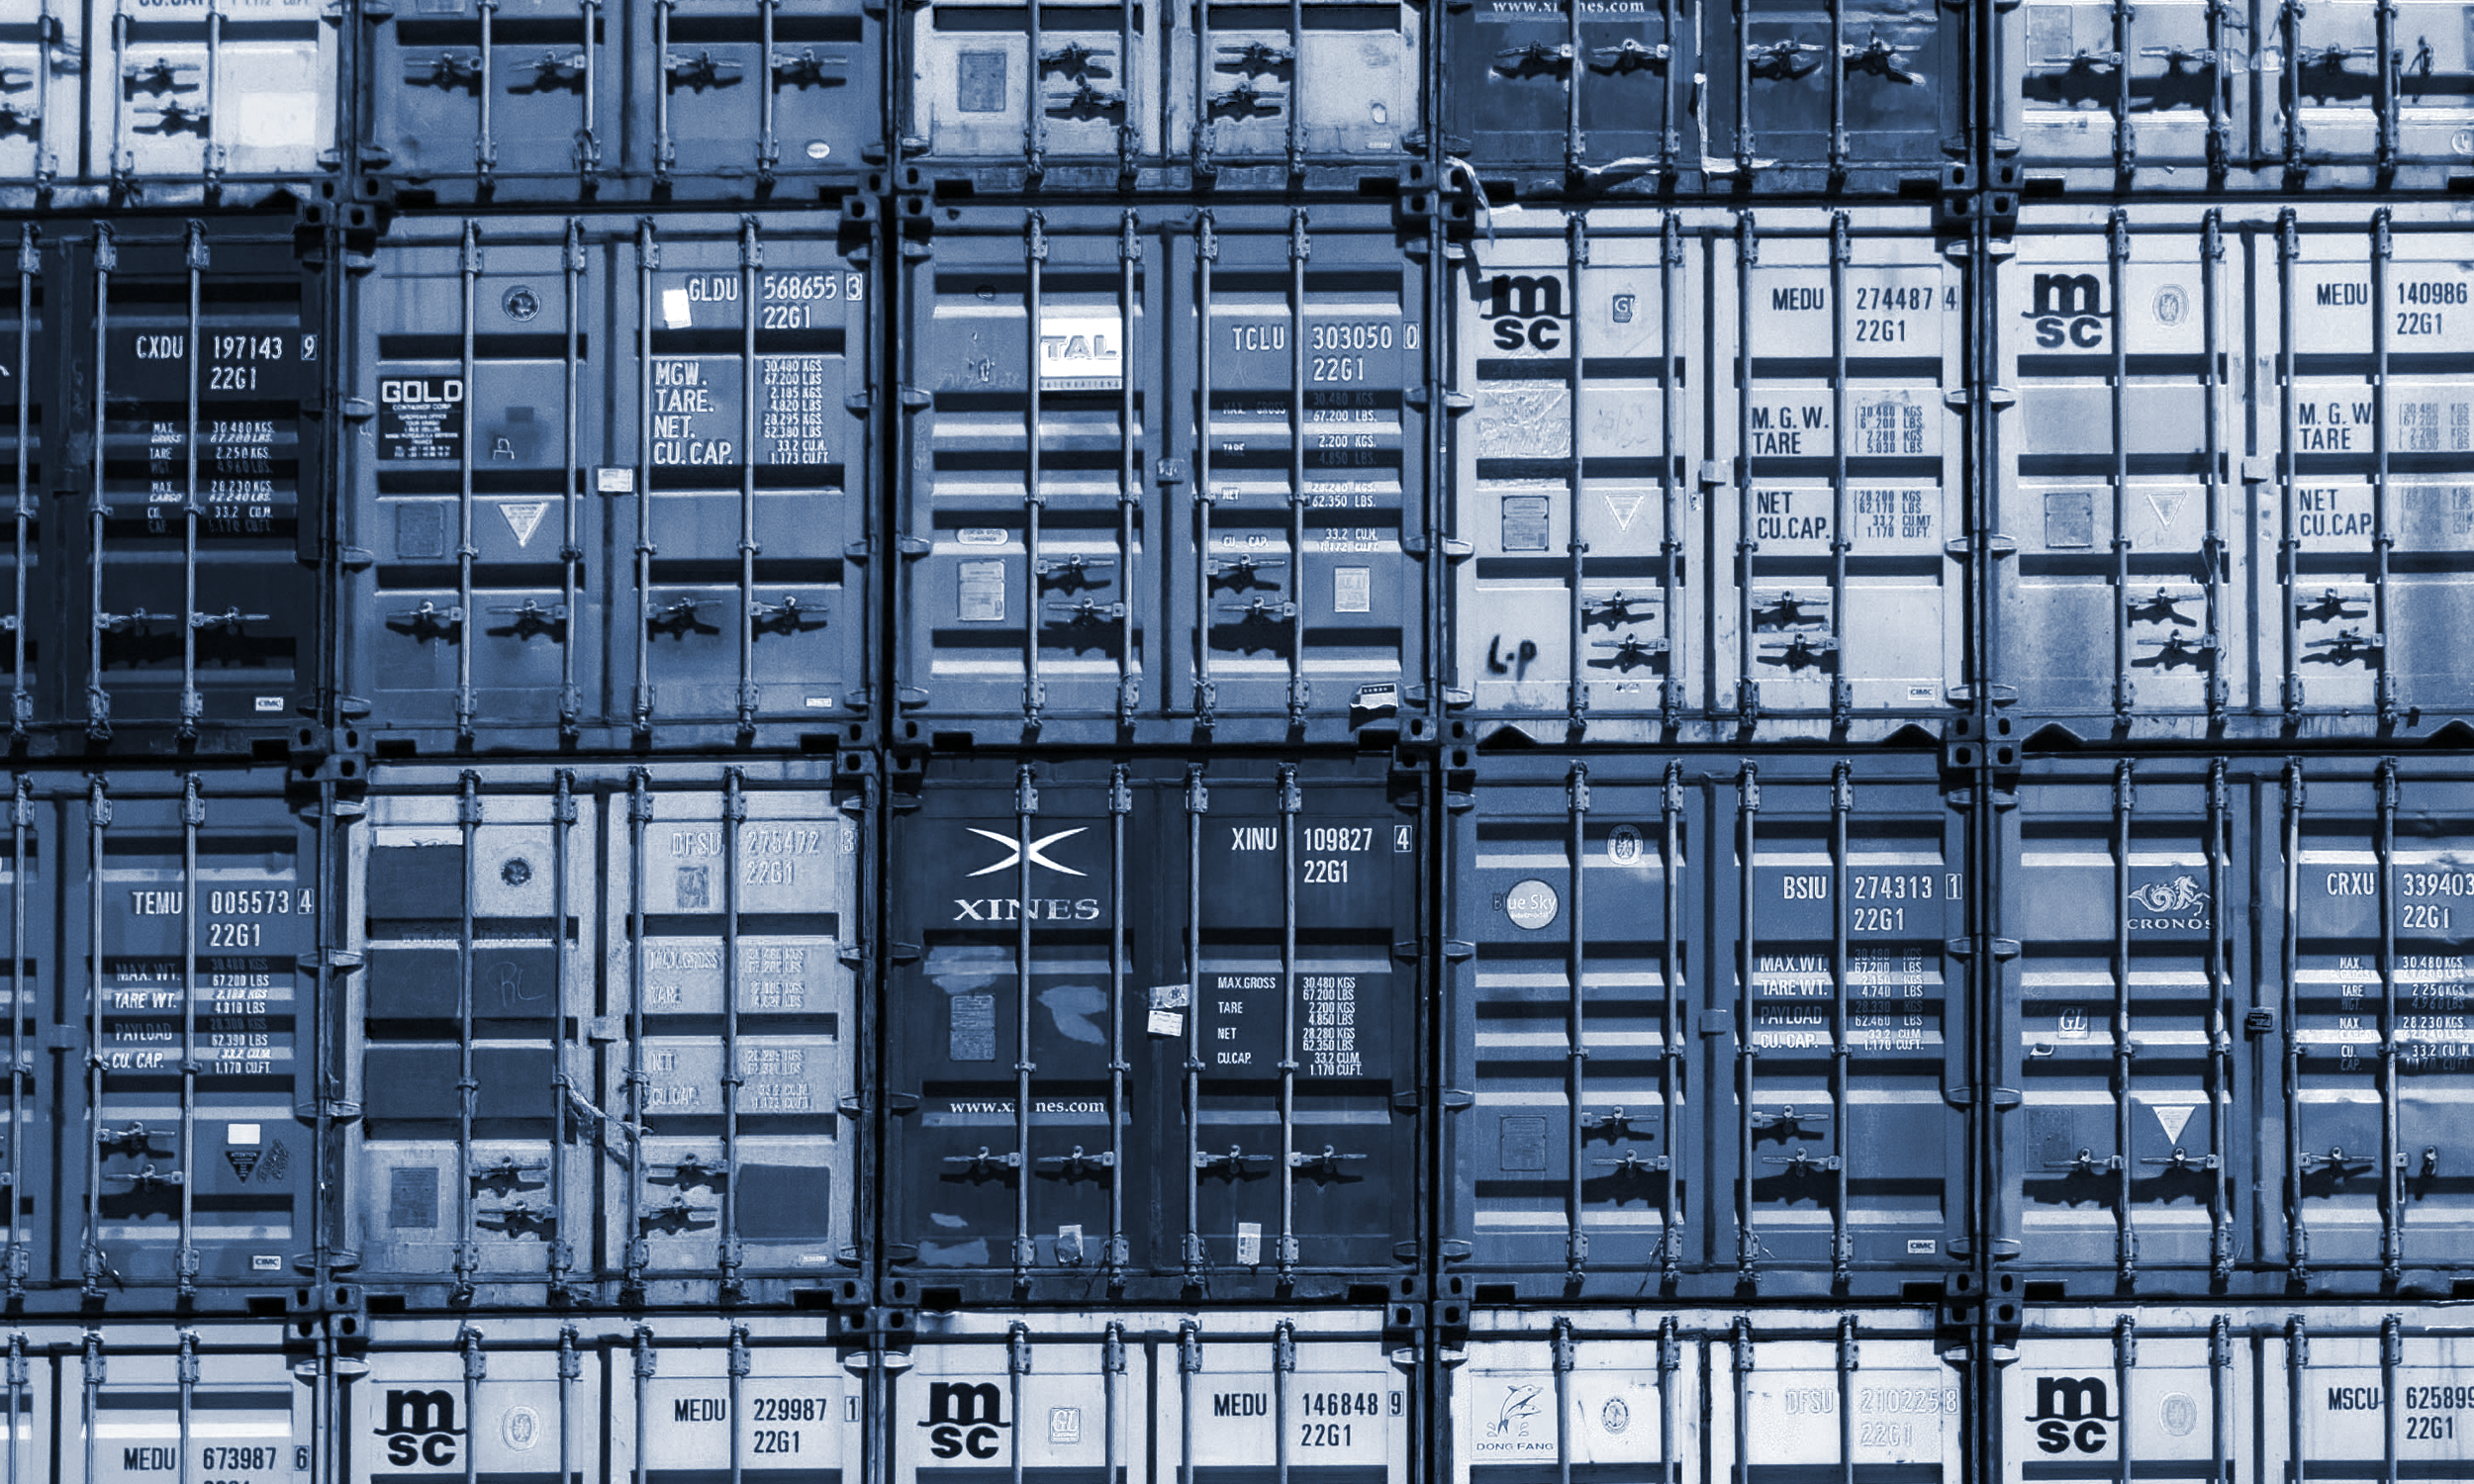 cargo_bw_overlay_blue.png